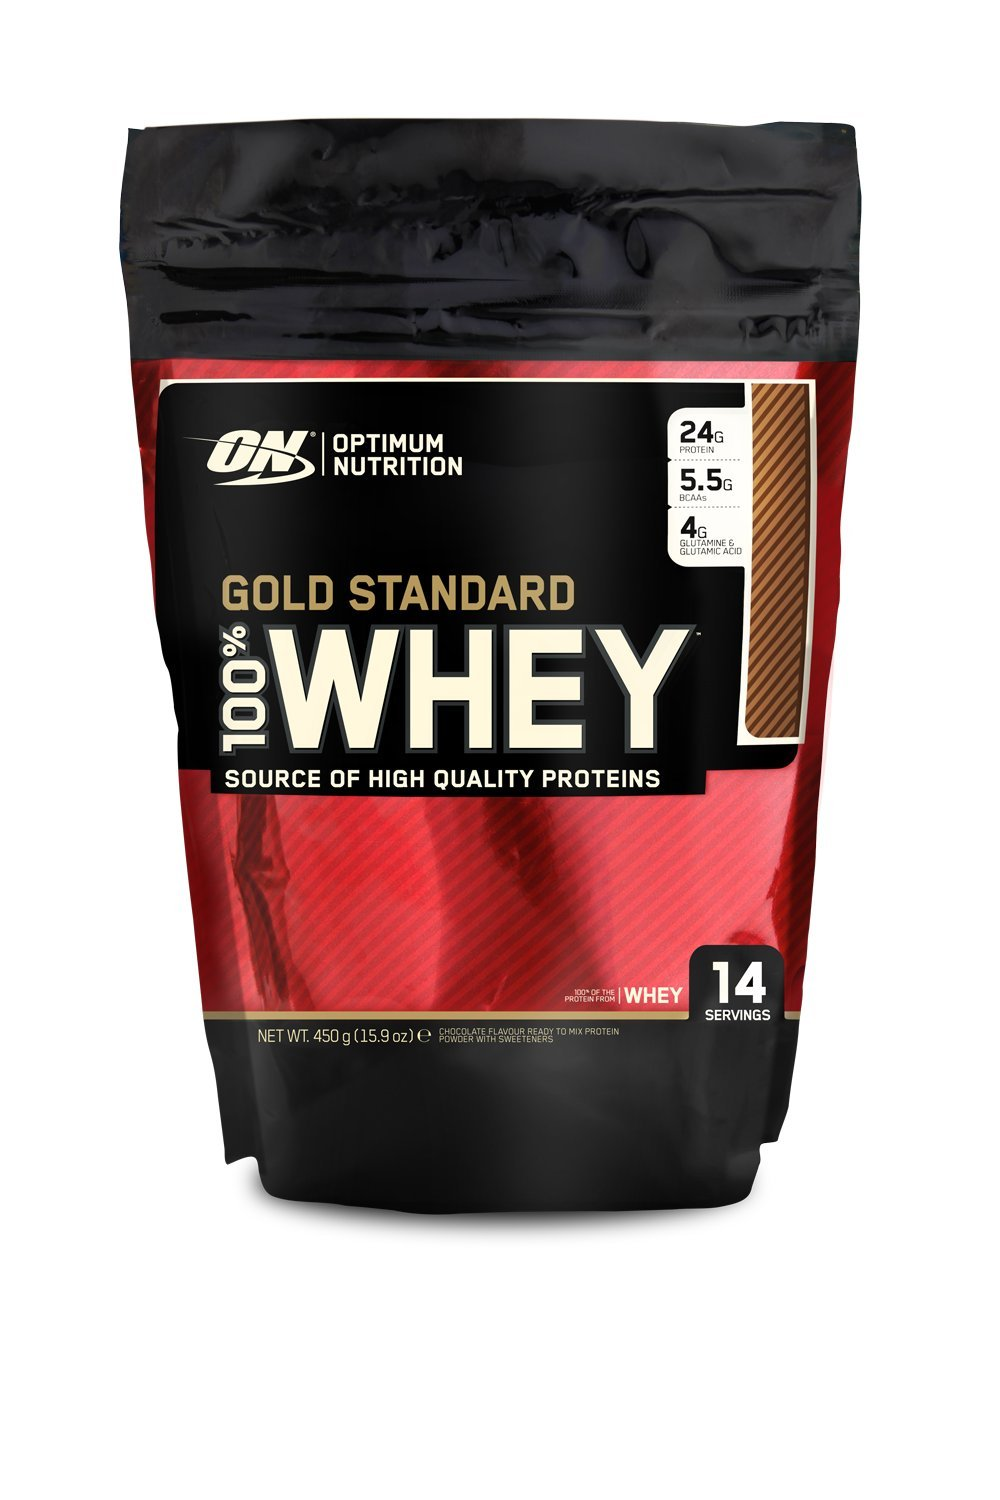 Amazon: Optimum Nutrition Whey 450g